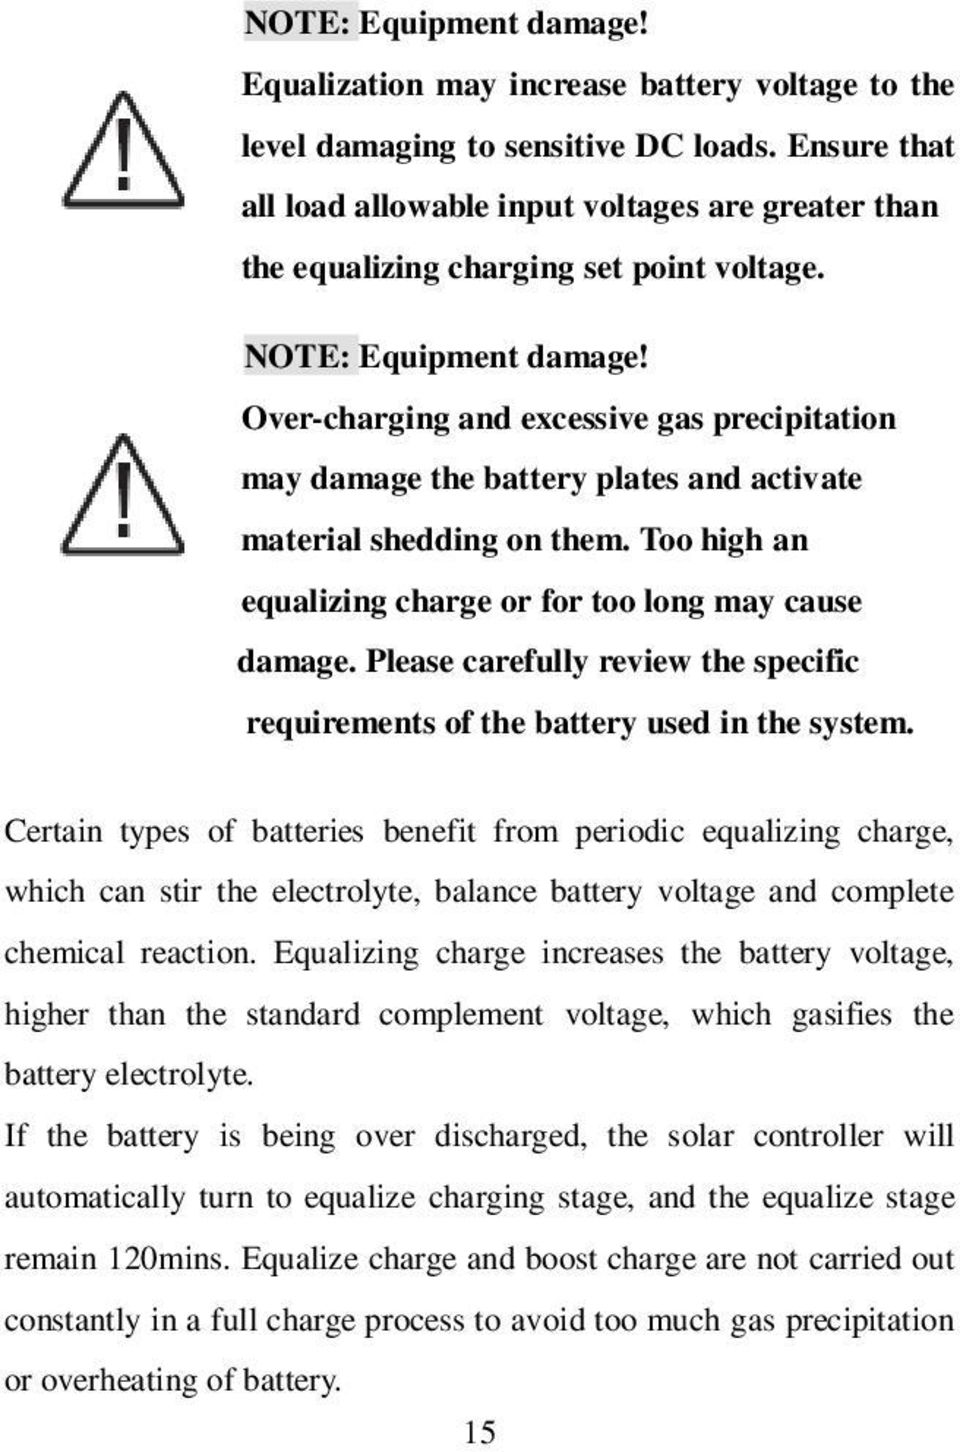 Over-charging and excessive gas precipitation may damage the battery plates and activate material shedding on them. Too high an equalizing charge or for too long may cause damage.